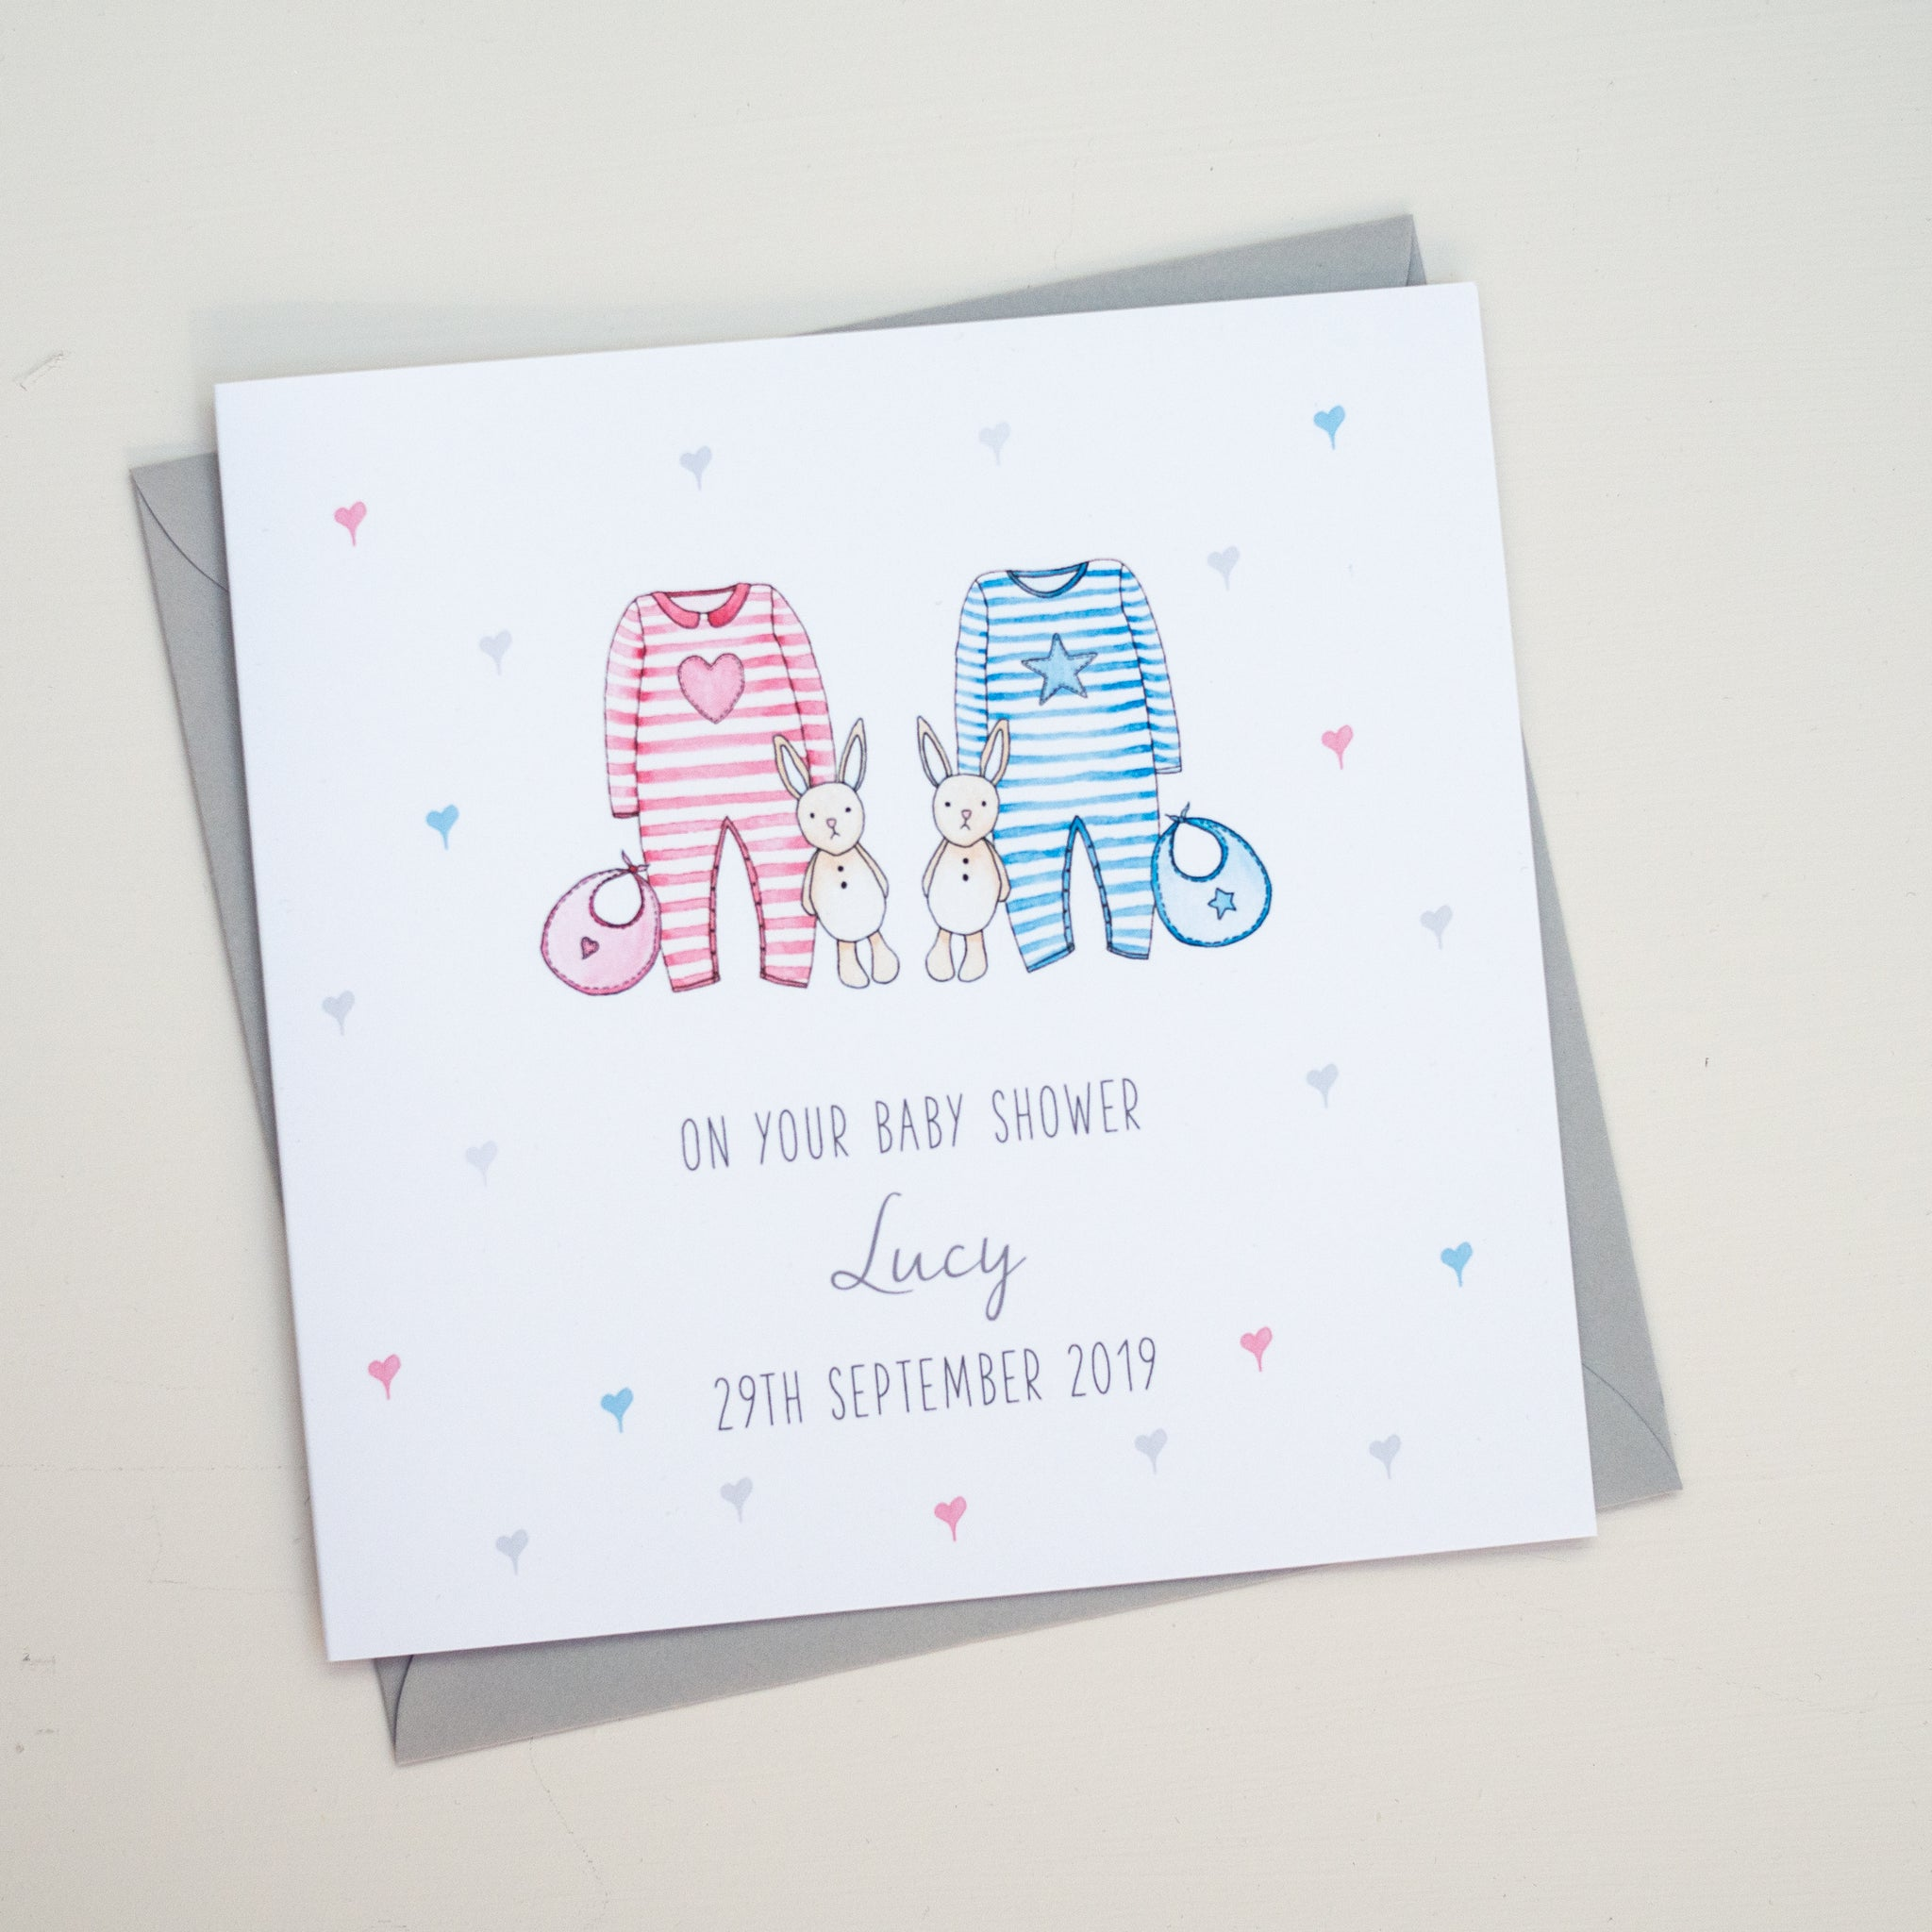 Personalised Twins Baby Shower Card - On your baby shower card